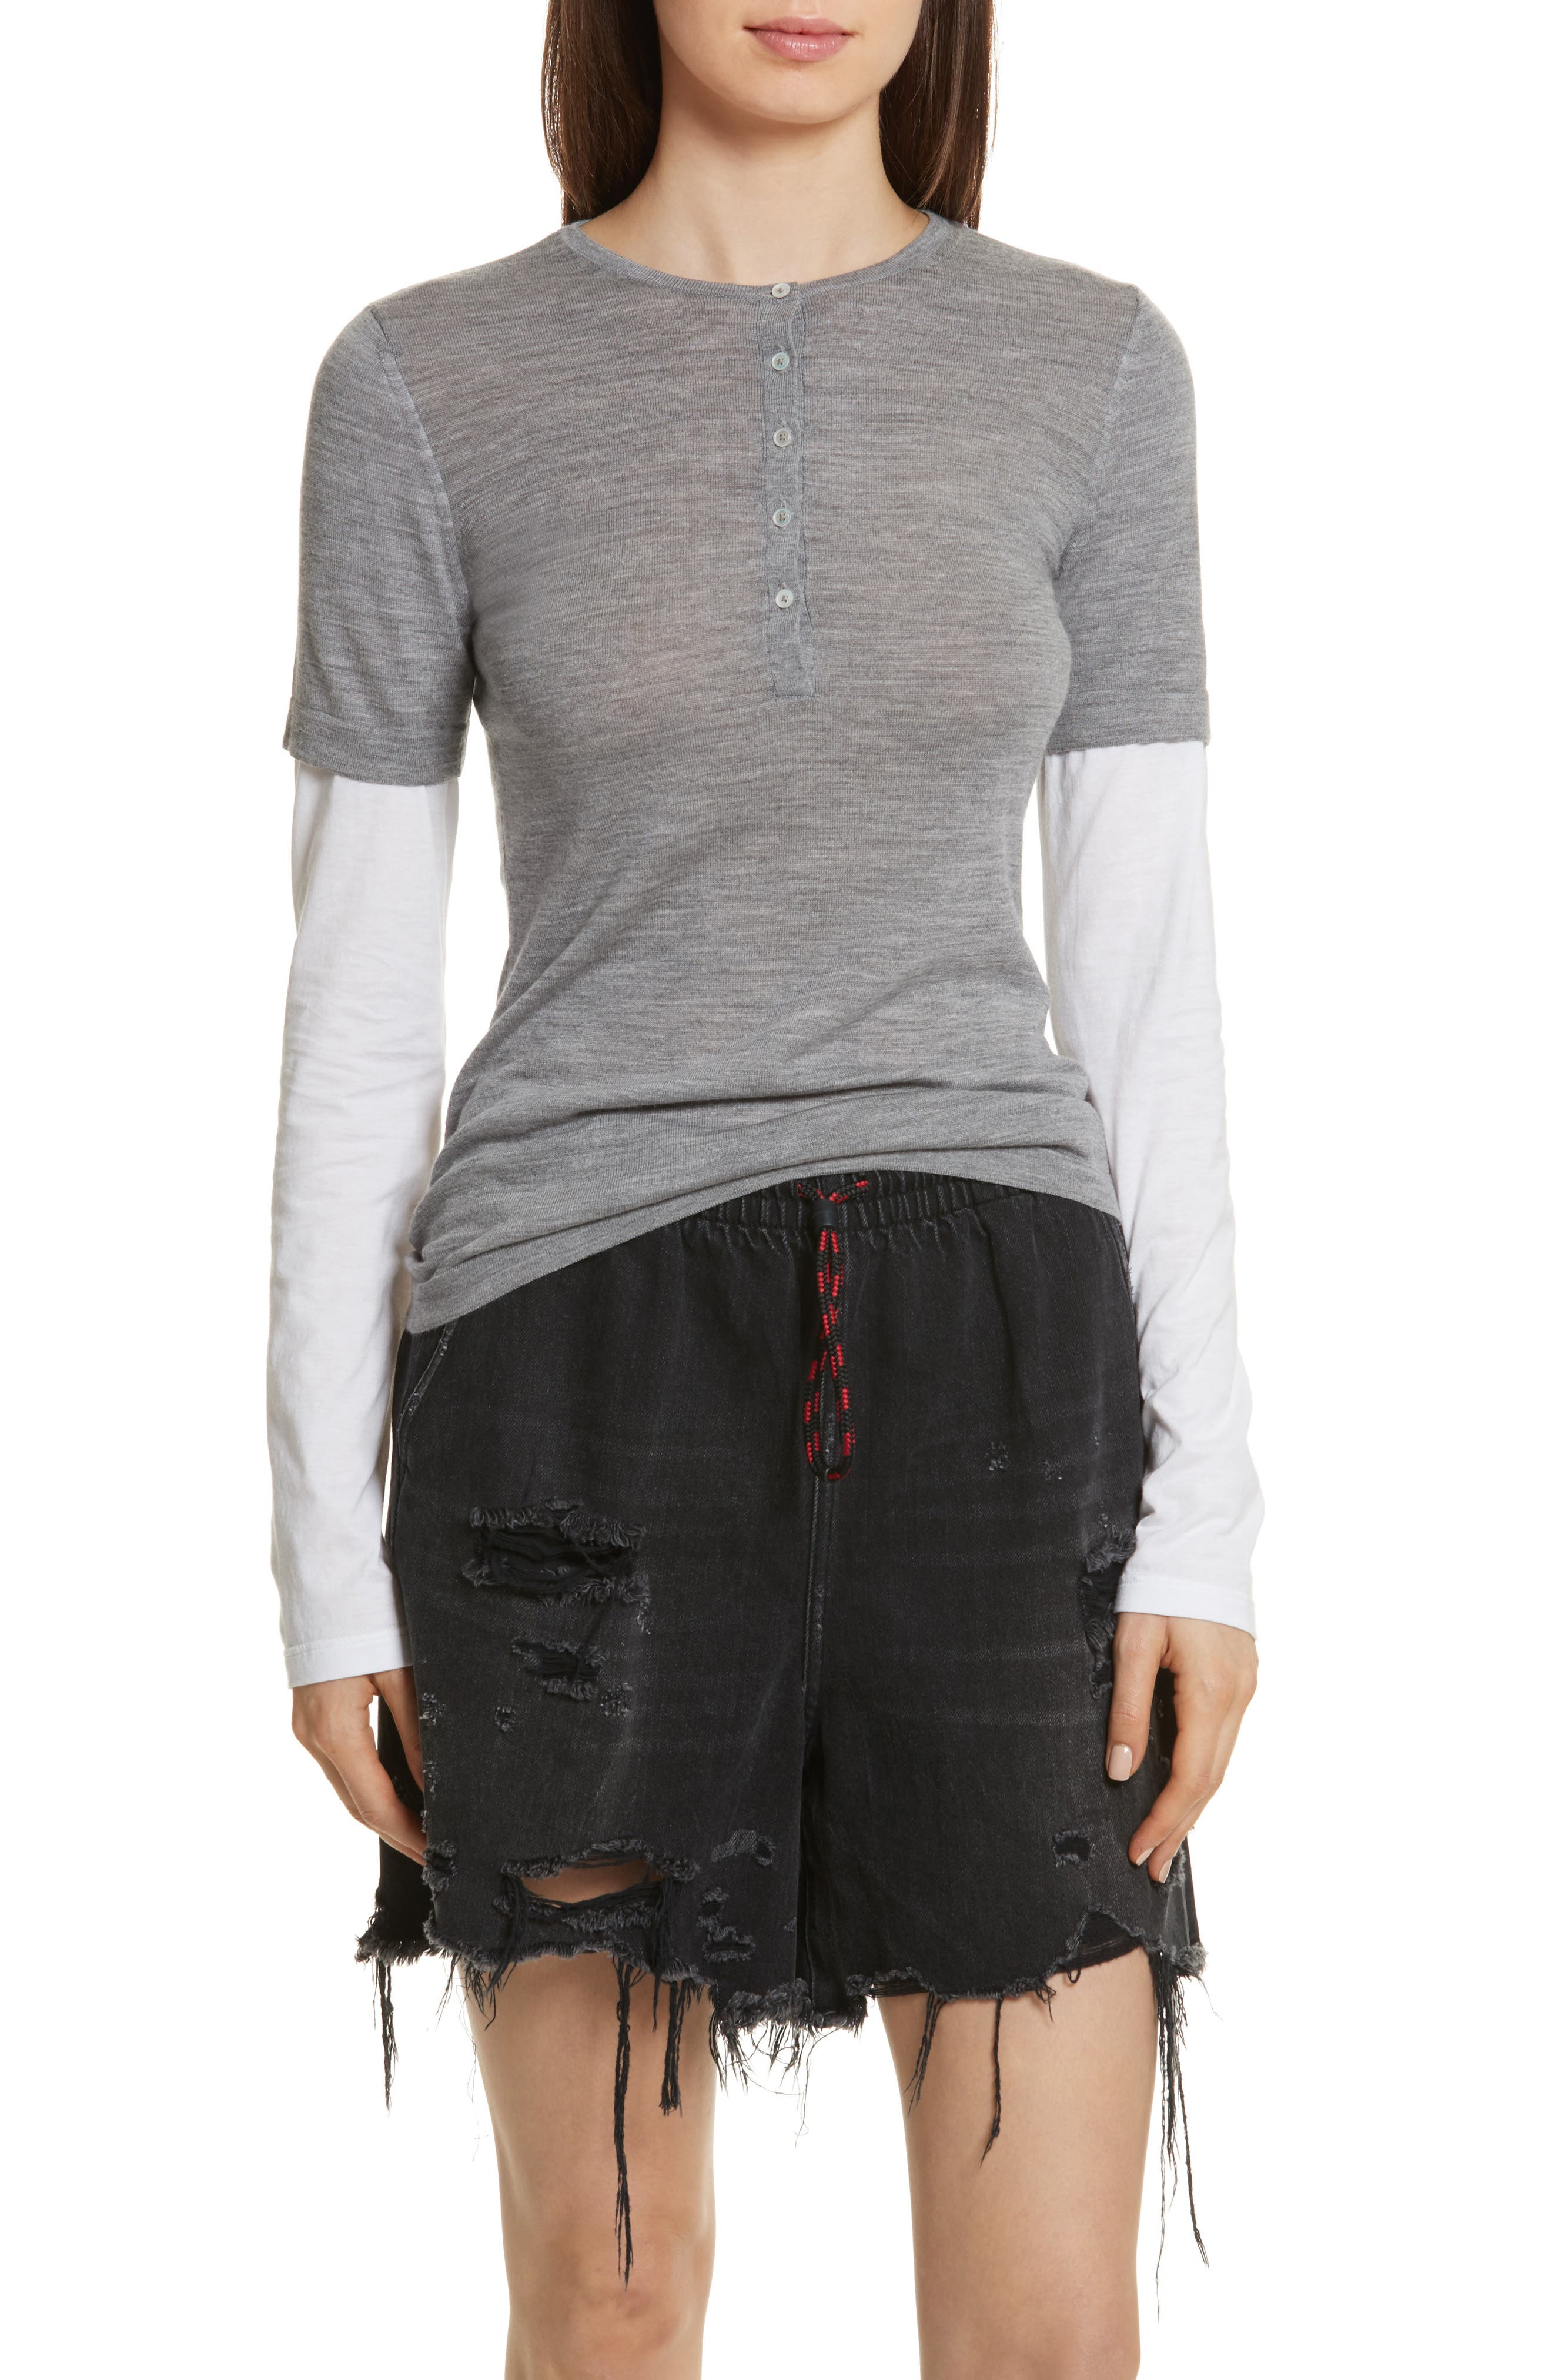 Knit Merino Wool Layered Top,                         Main,                         color, Heather Grey/ White